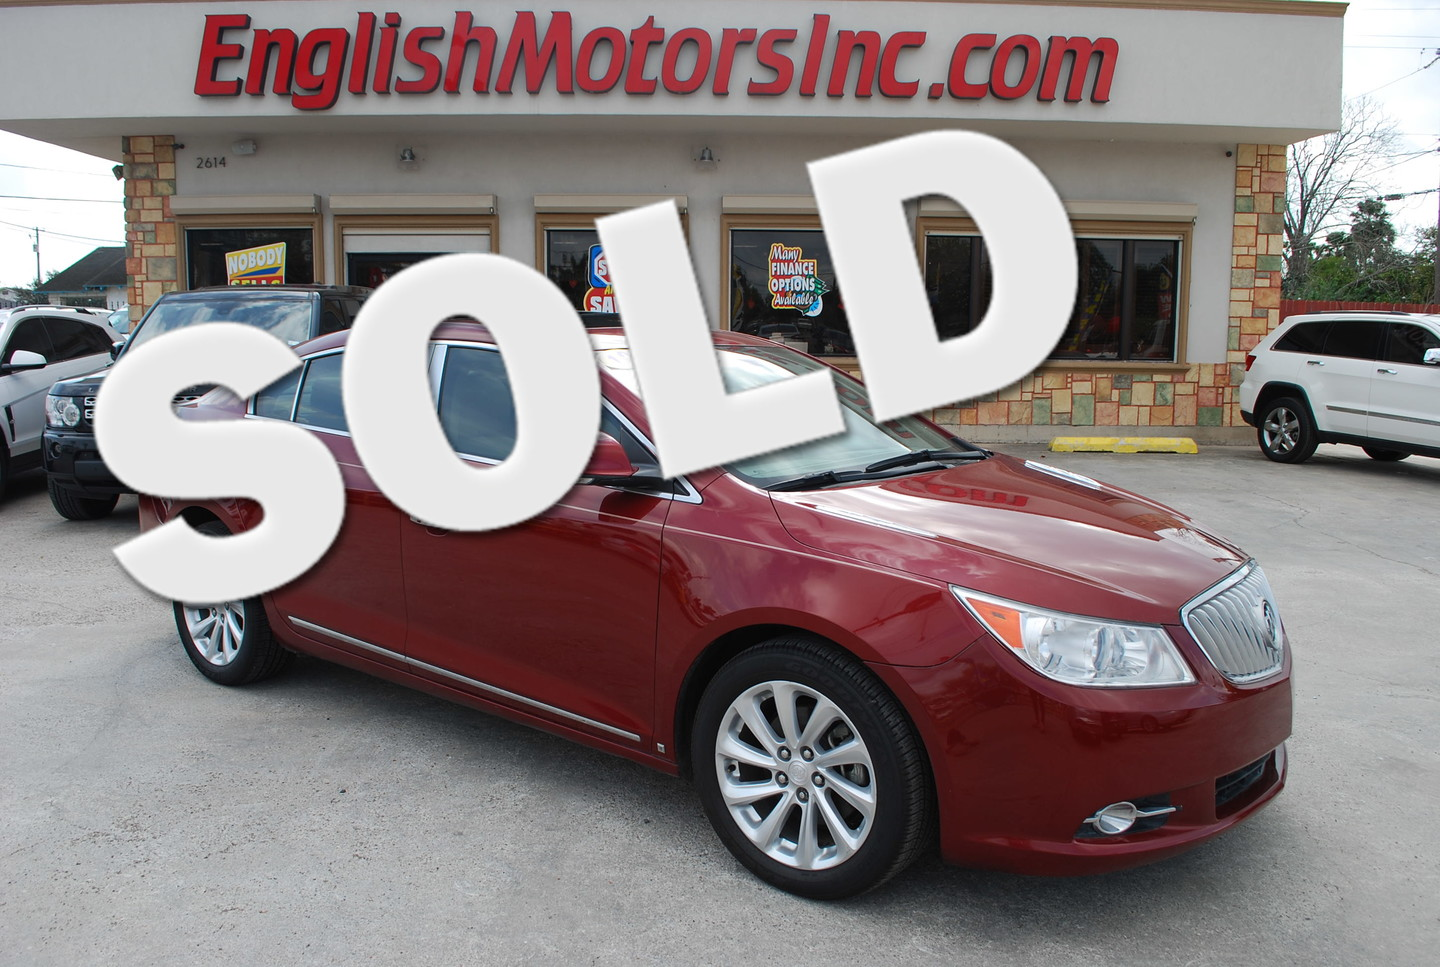 2010 buick lacrosse cxs brownsville tx english motors for English motors in brownsville